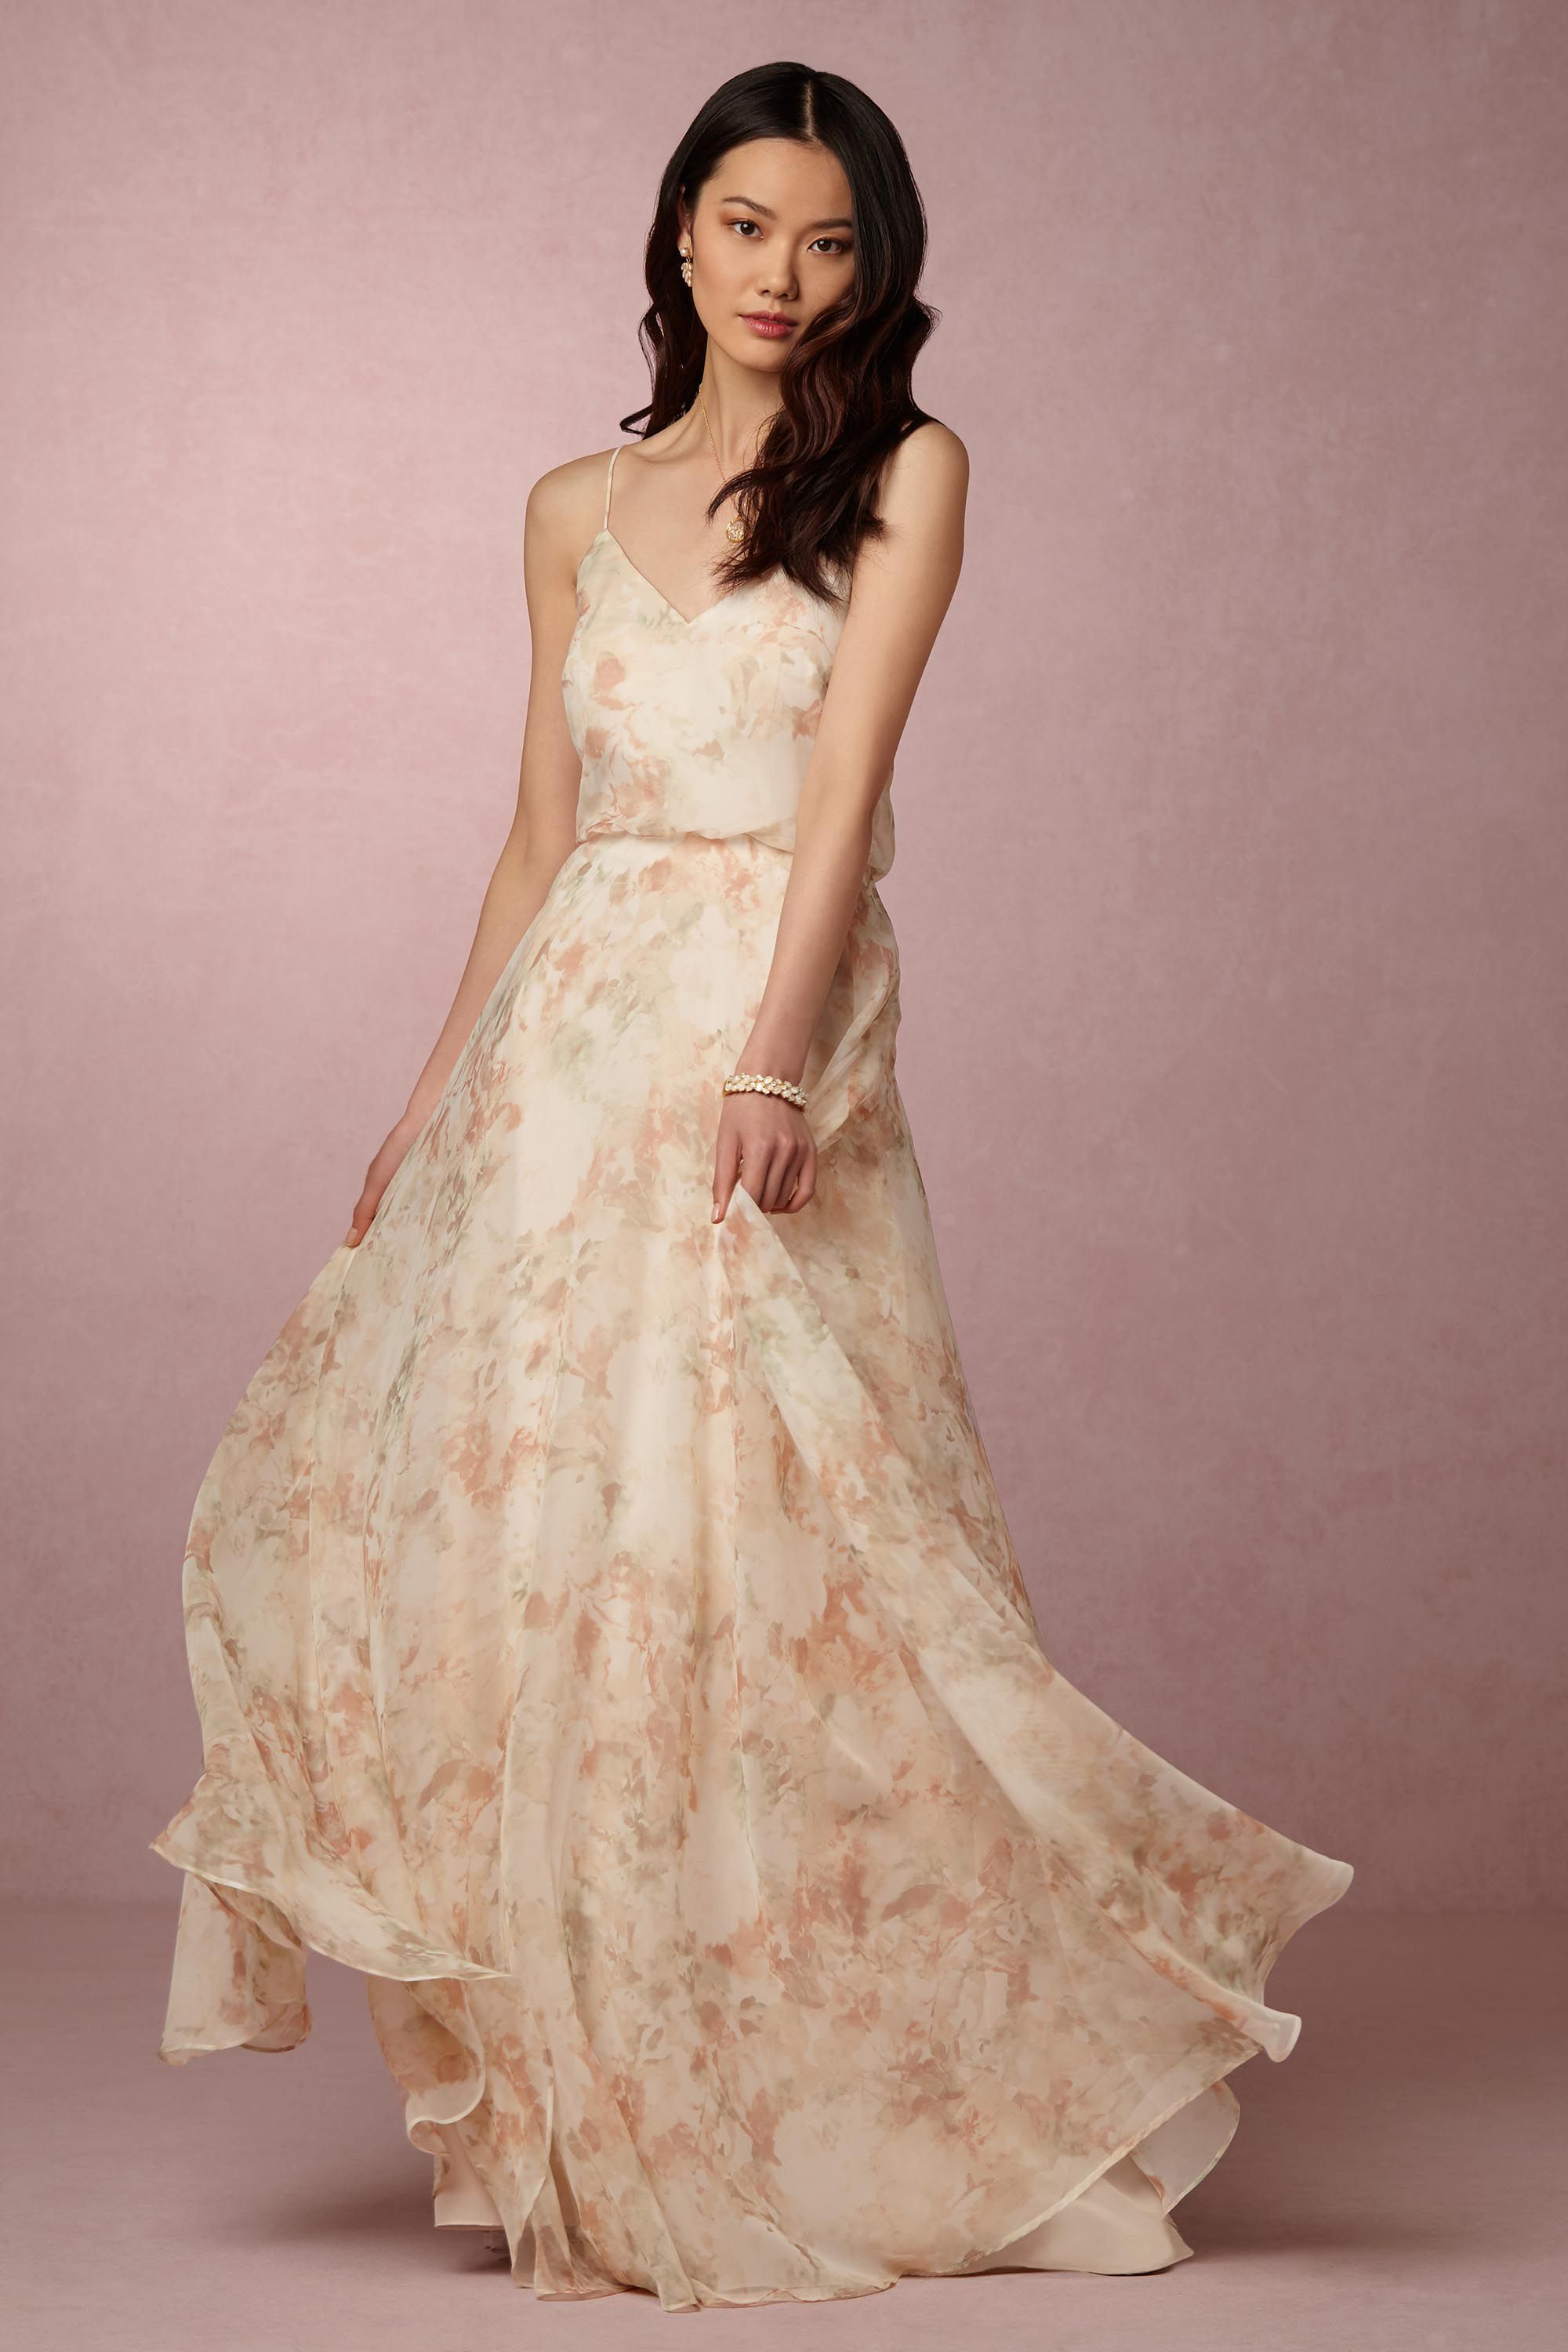 Blush floral bridesmaid dress inesse dress by jenny yoo for blush floral bridesmaid dress inesse dress by jenny yoo for bhldn ombrellifo Choice Image